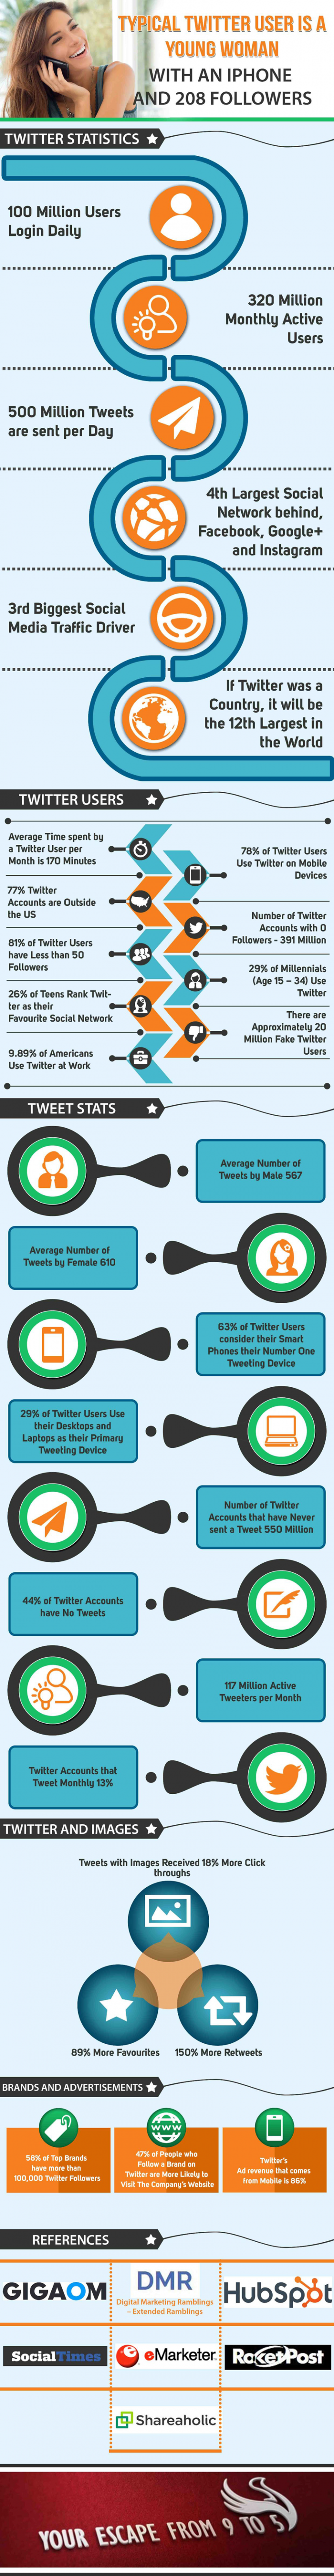 How Big Is Twitter - Infographic